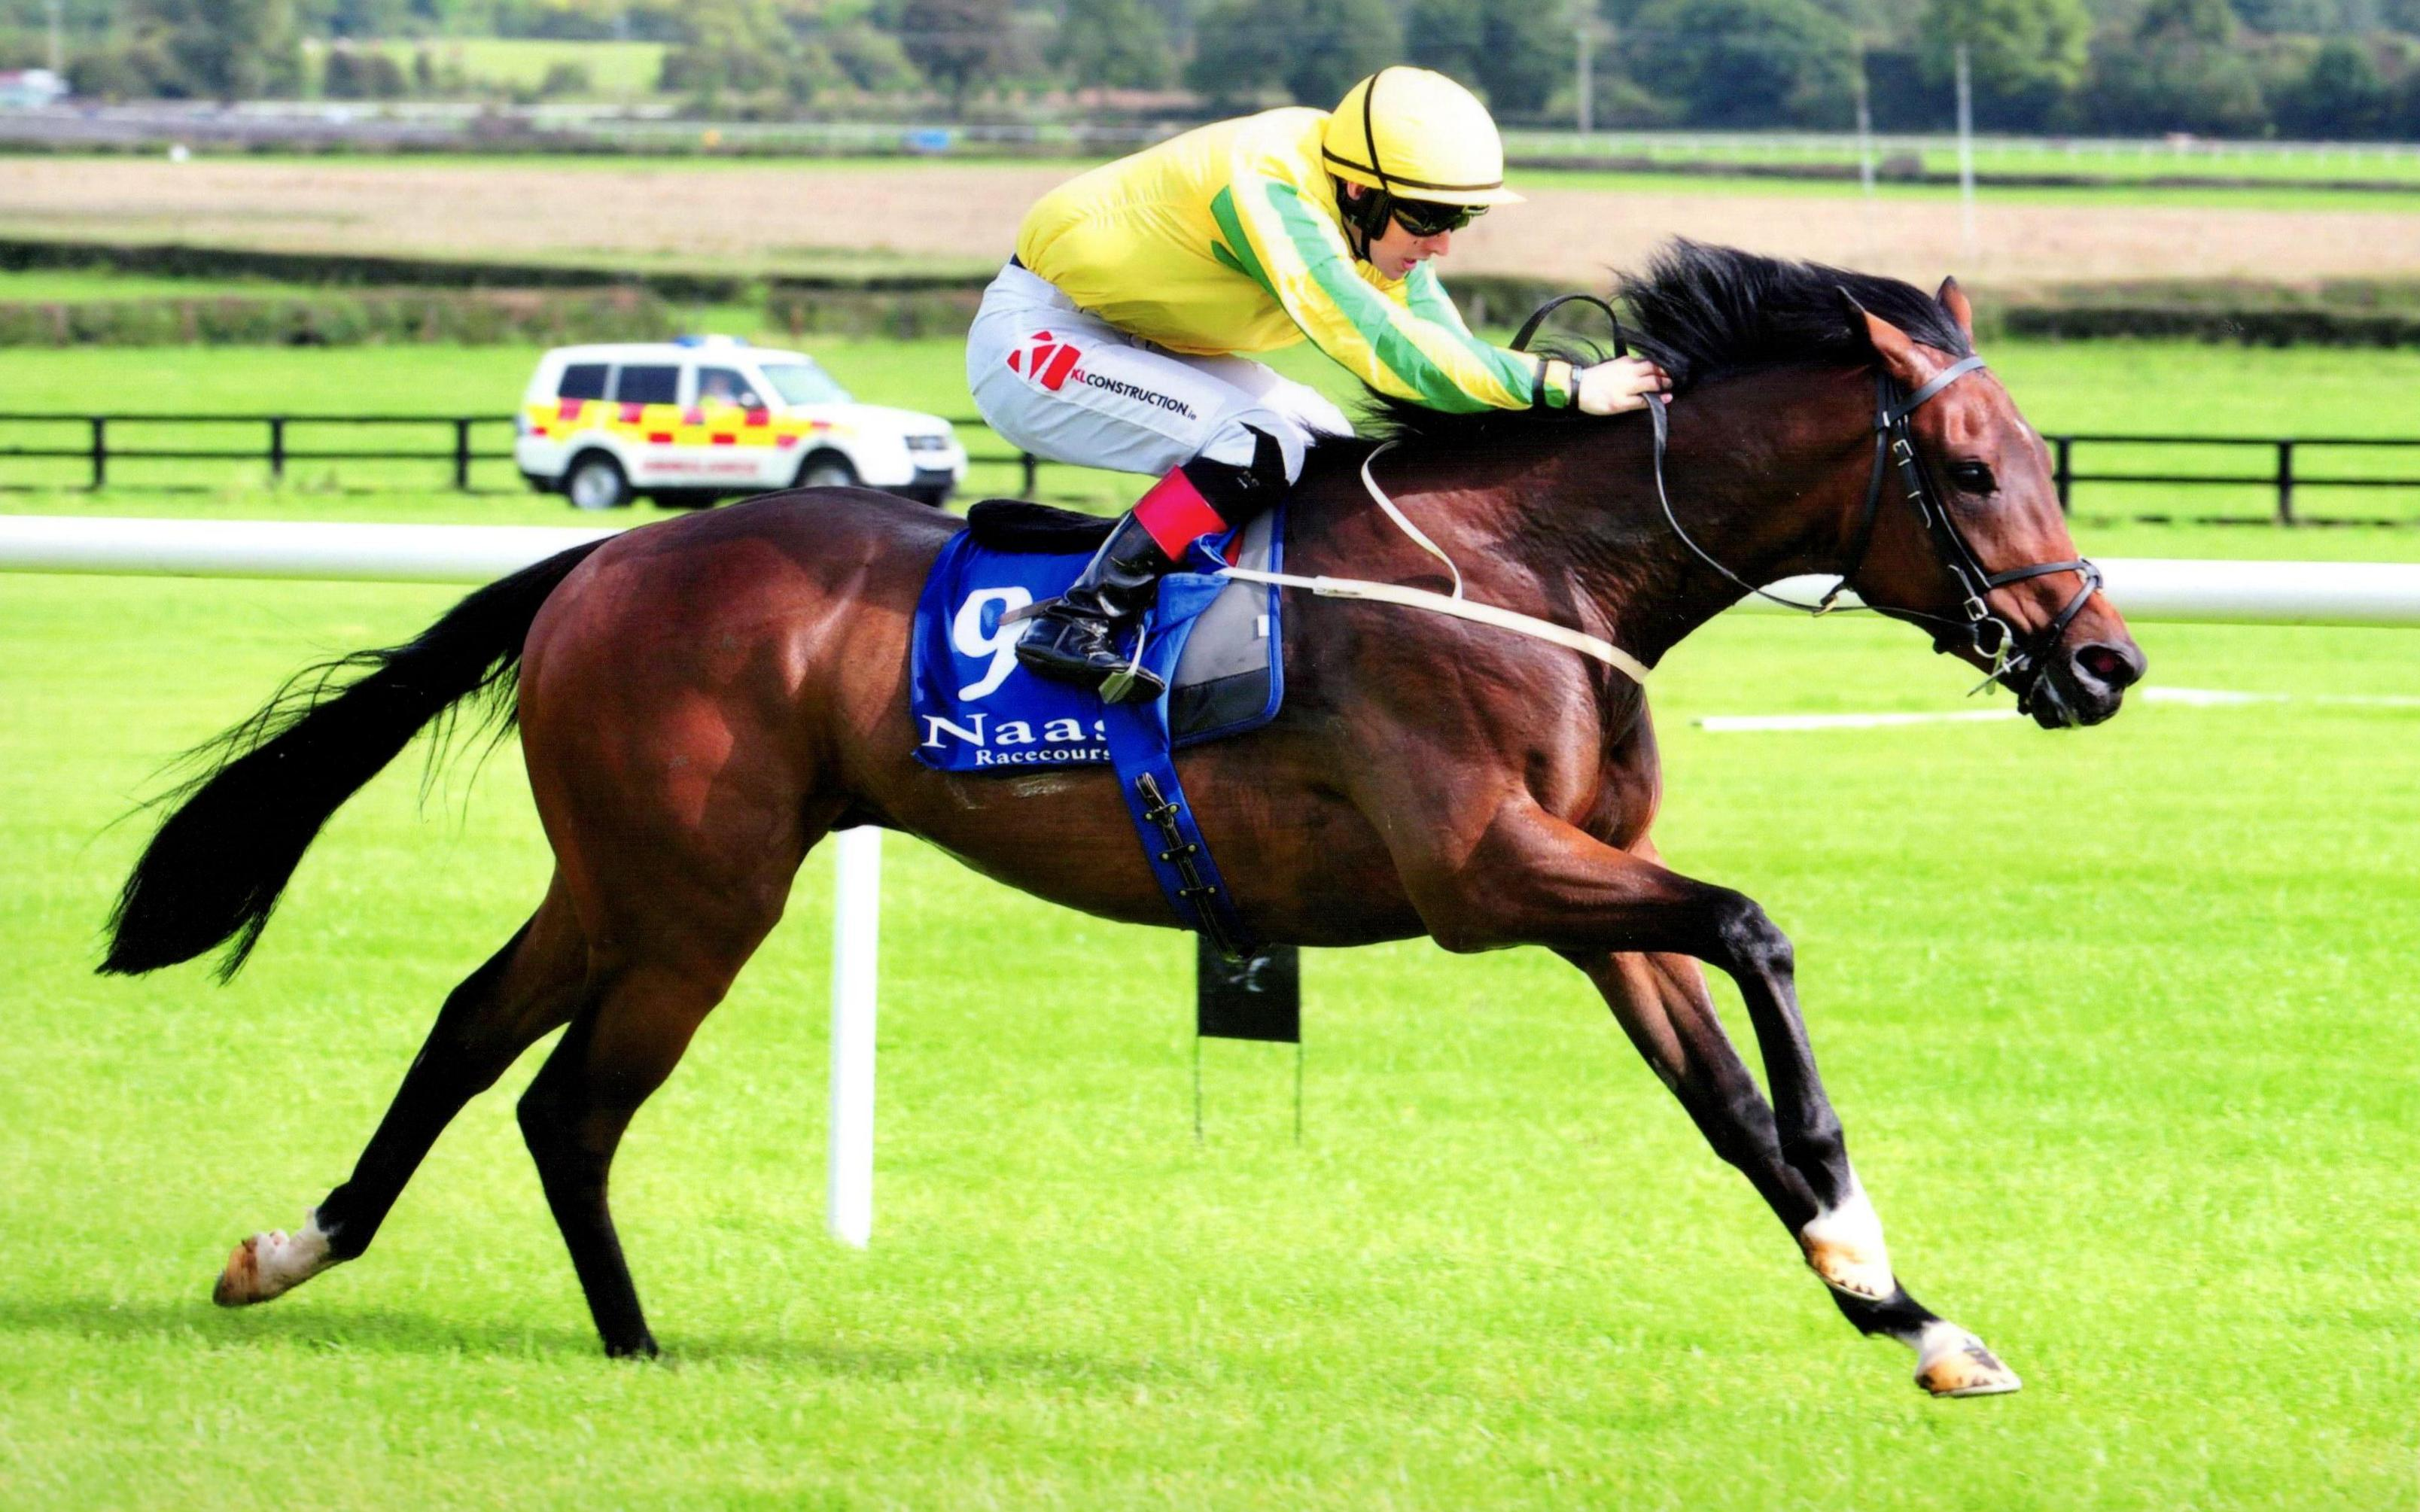 MCMUNIGAL runs out an impressive winner at Naas 24th September 2017